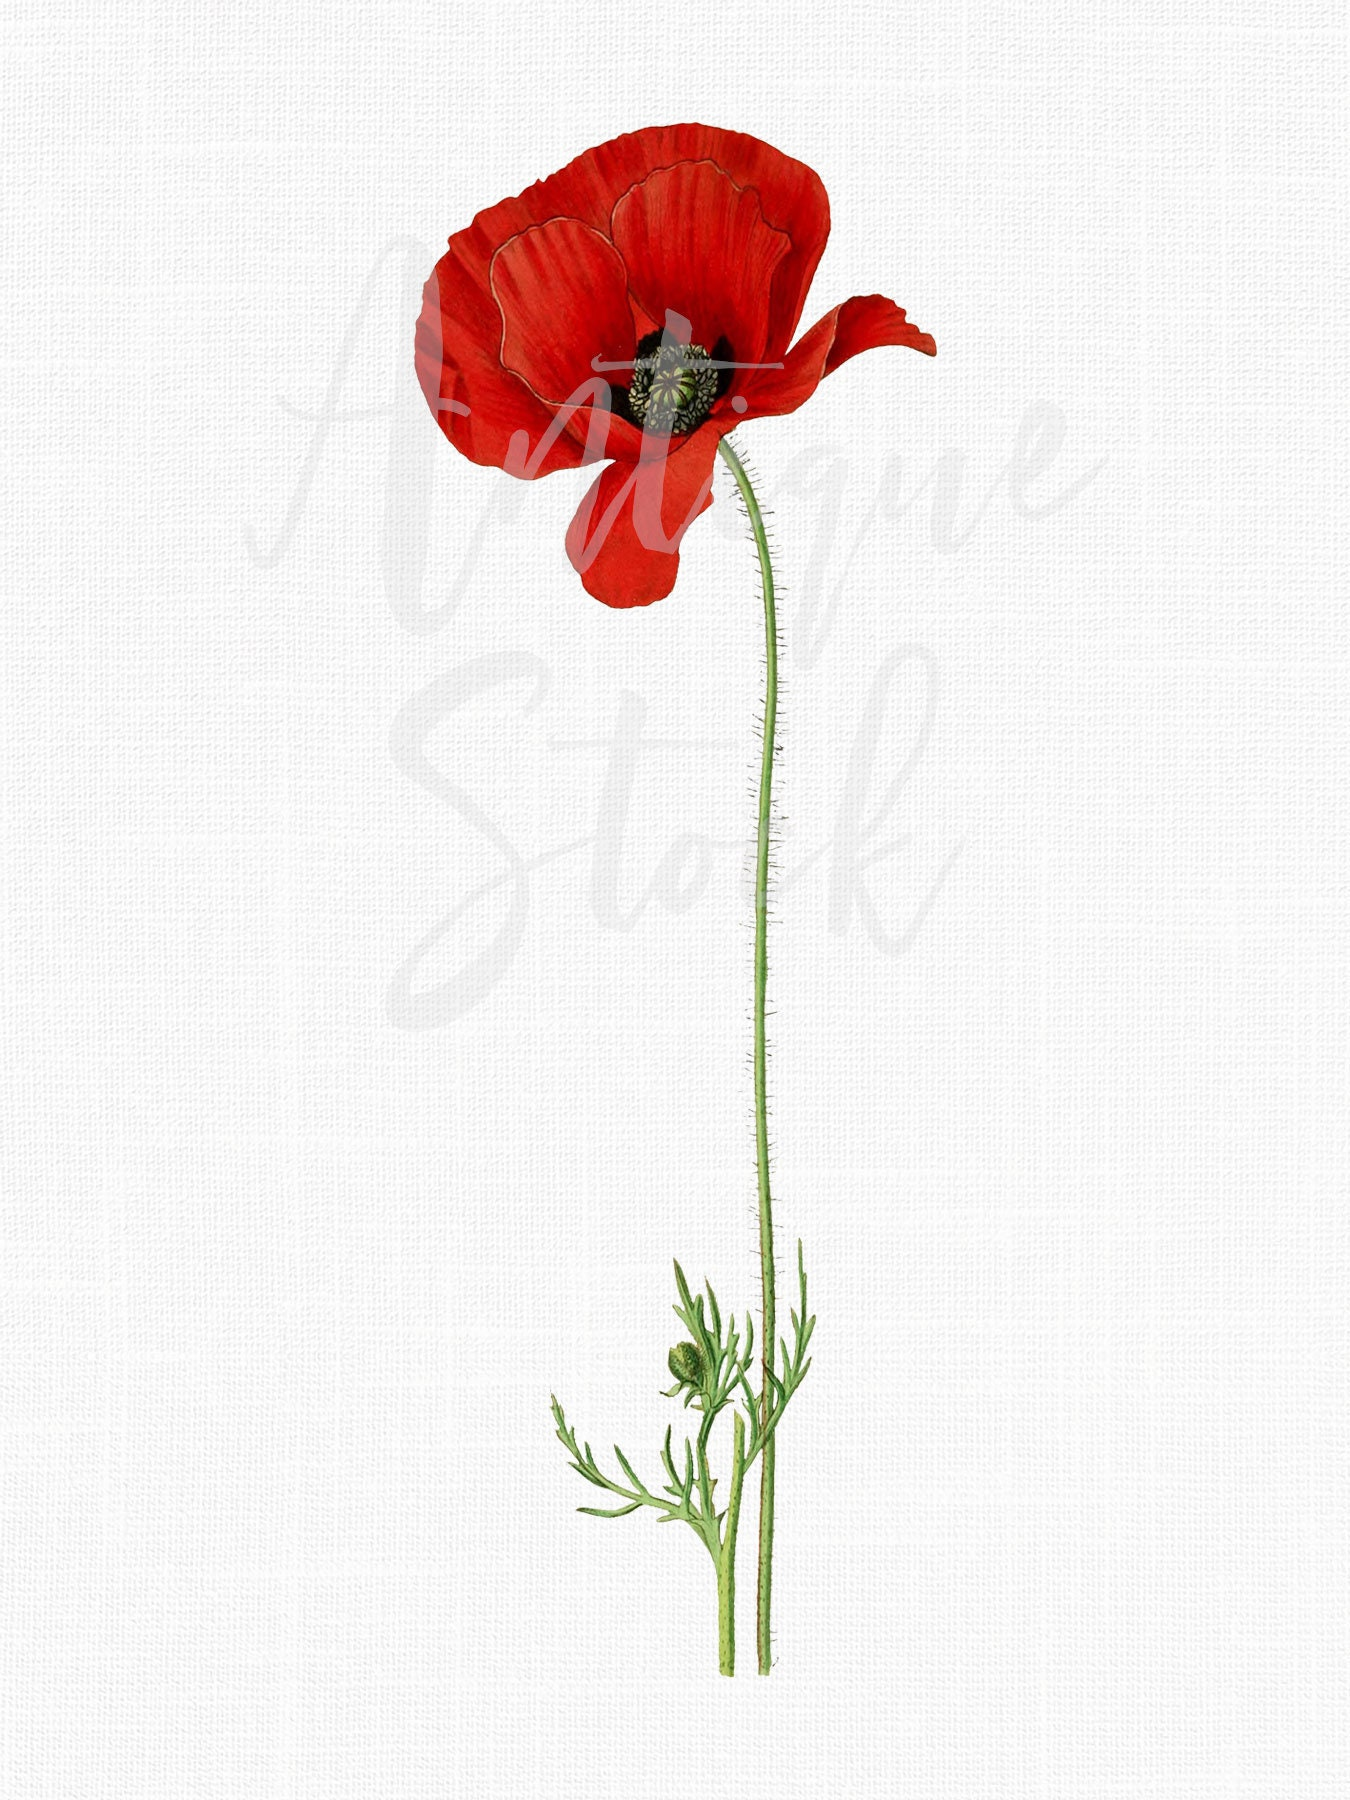 Red Flower Clipart Poppy Flower Vintage Botanical Illustration